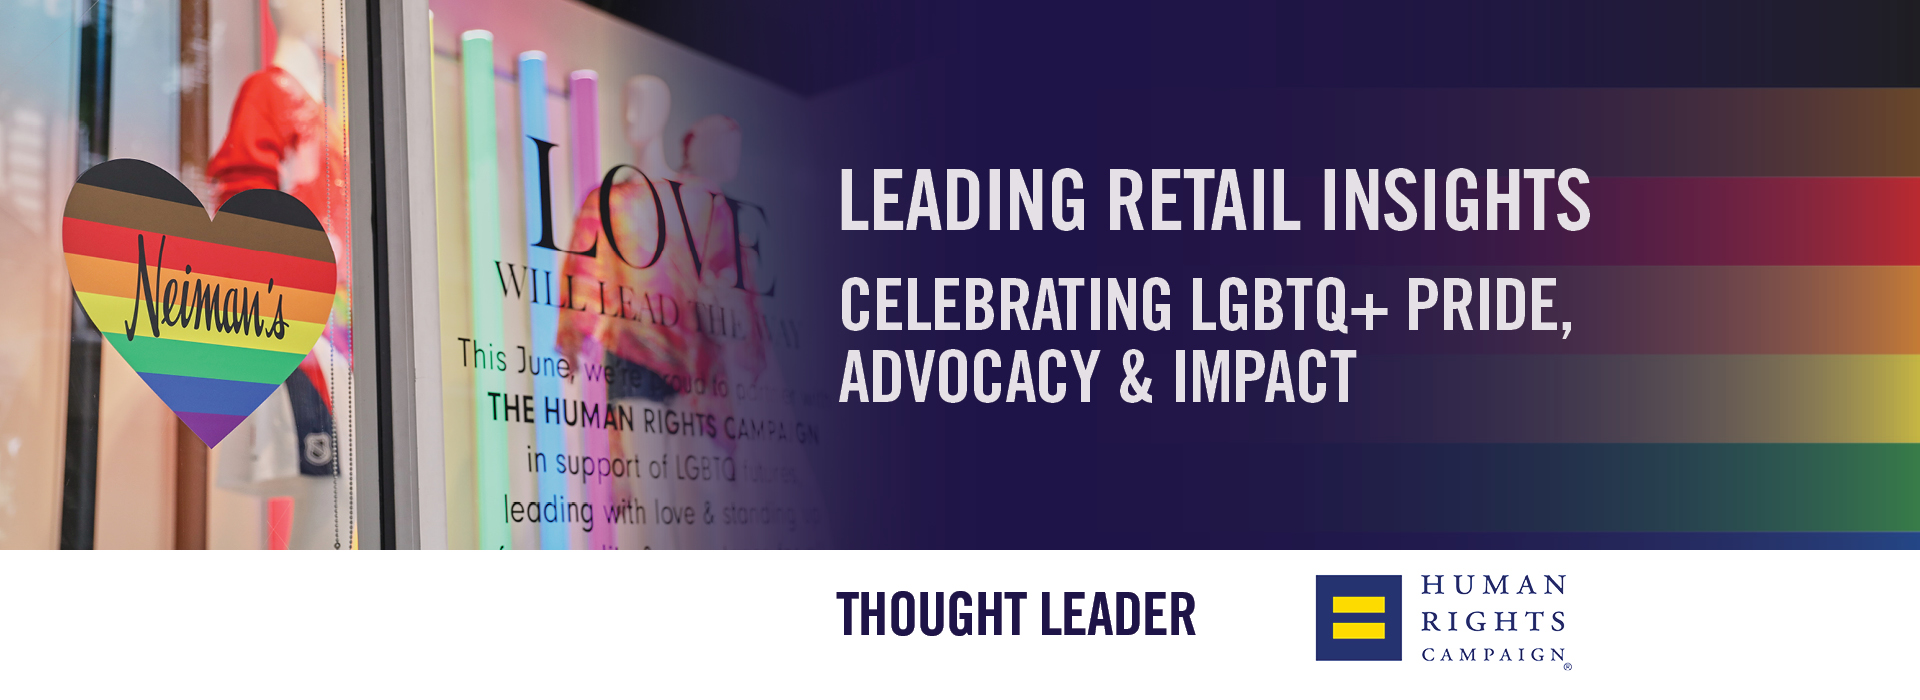 Leading Retail Insights: Celebrating LGBTQ+ PRIDE, Advocacy and Impact